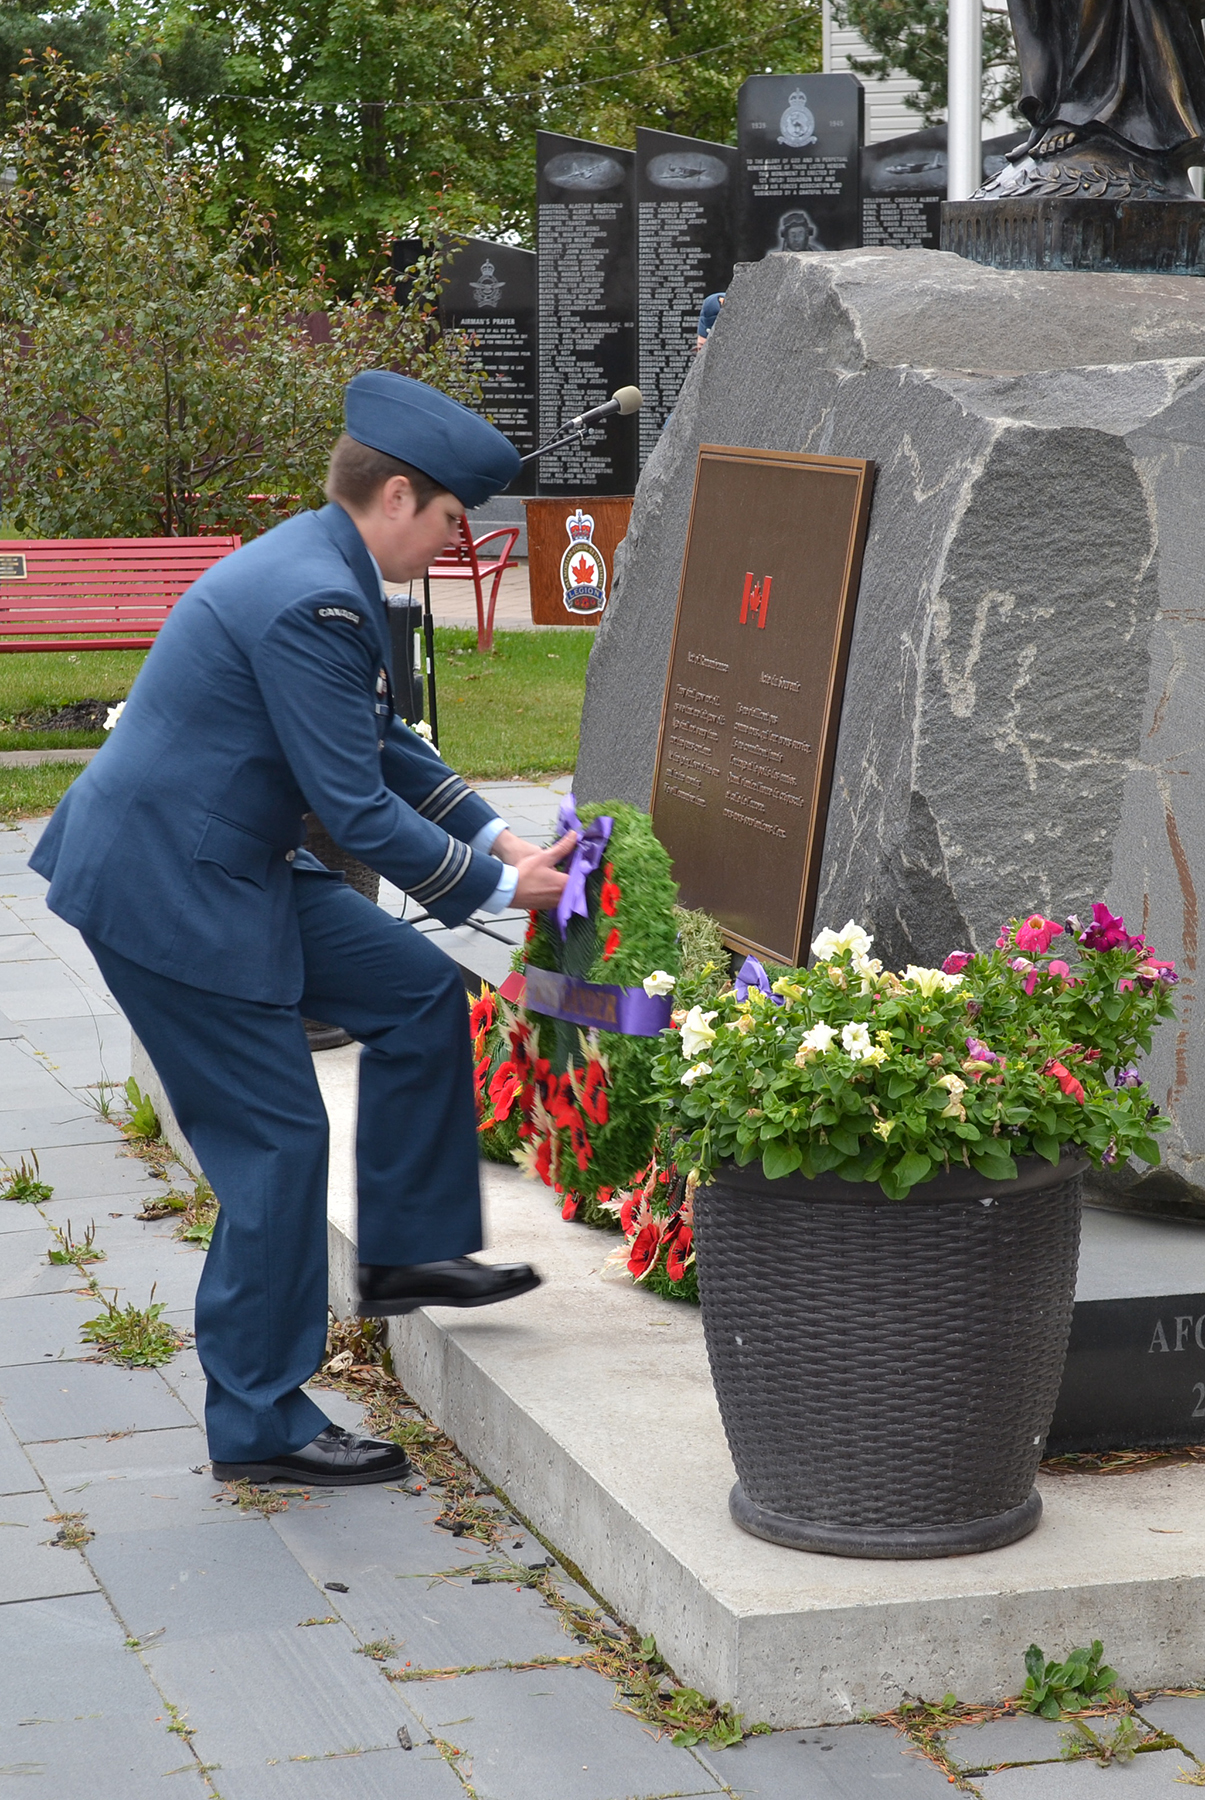 A member of the Royal Canadian Air Force lays a wreath at the cenotaph in the Gander Heritage Memorial Park in Gander, Newfoundland and Labrador, to mark the 79th anniversary of the Battle of Britain. PHOTO: 9 Wing Gander